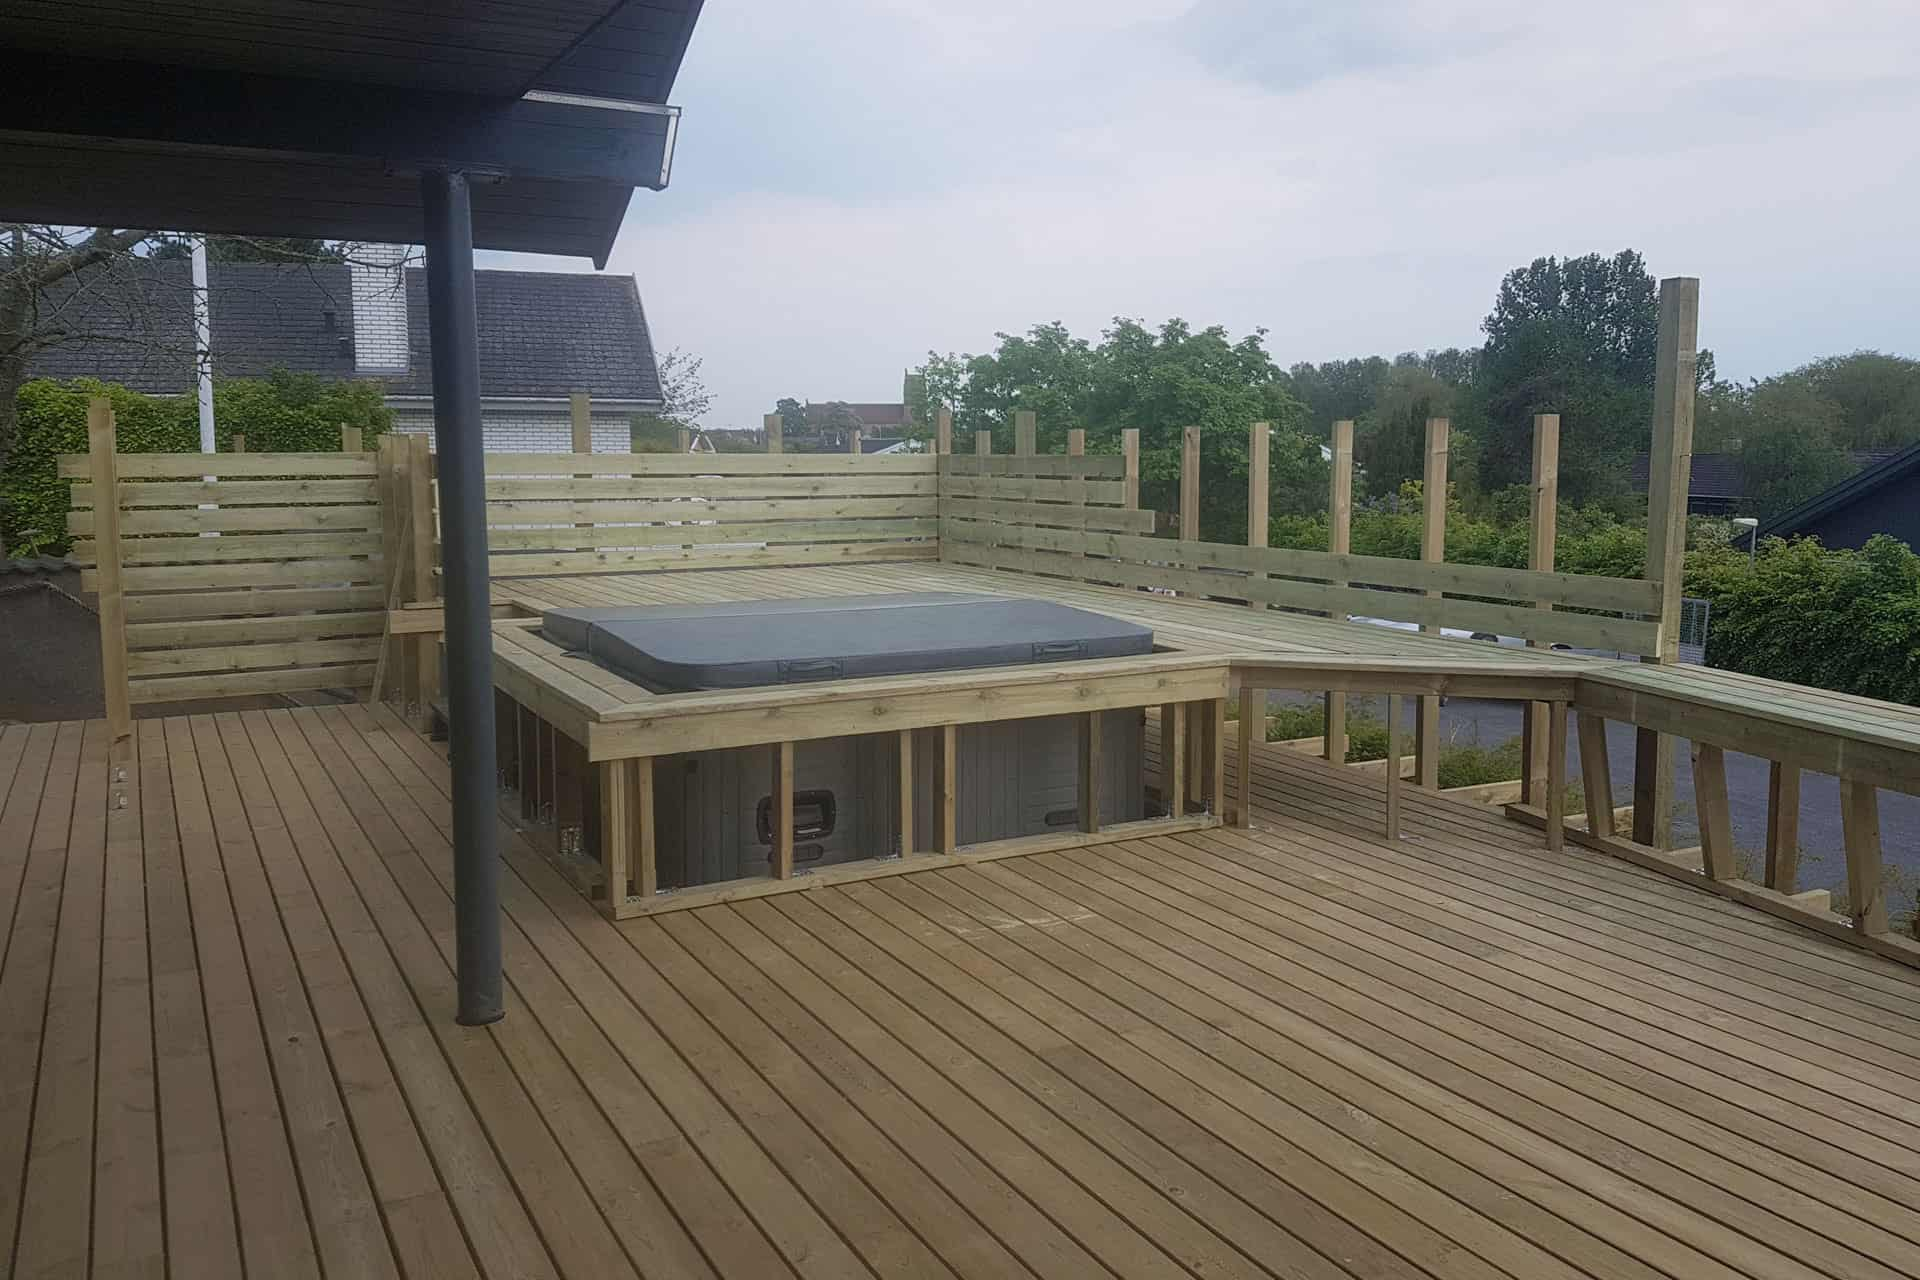 How to build a deck with lowered spa